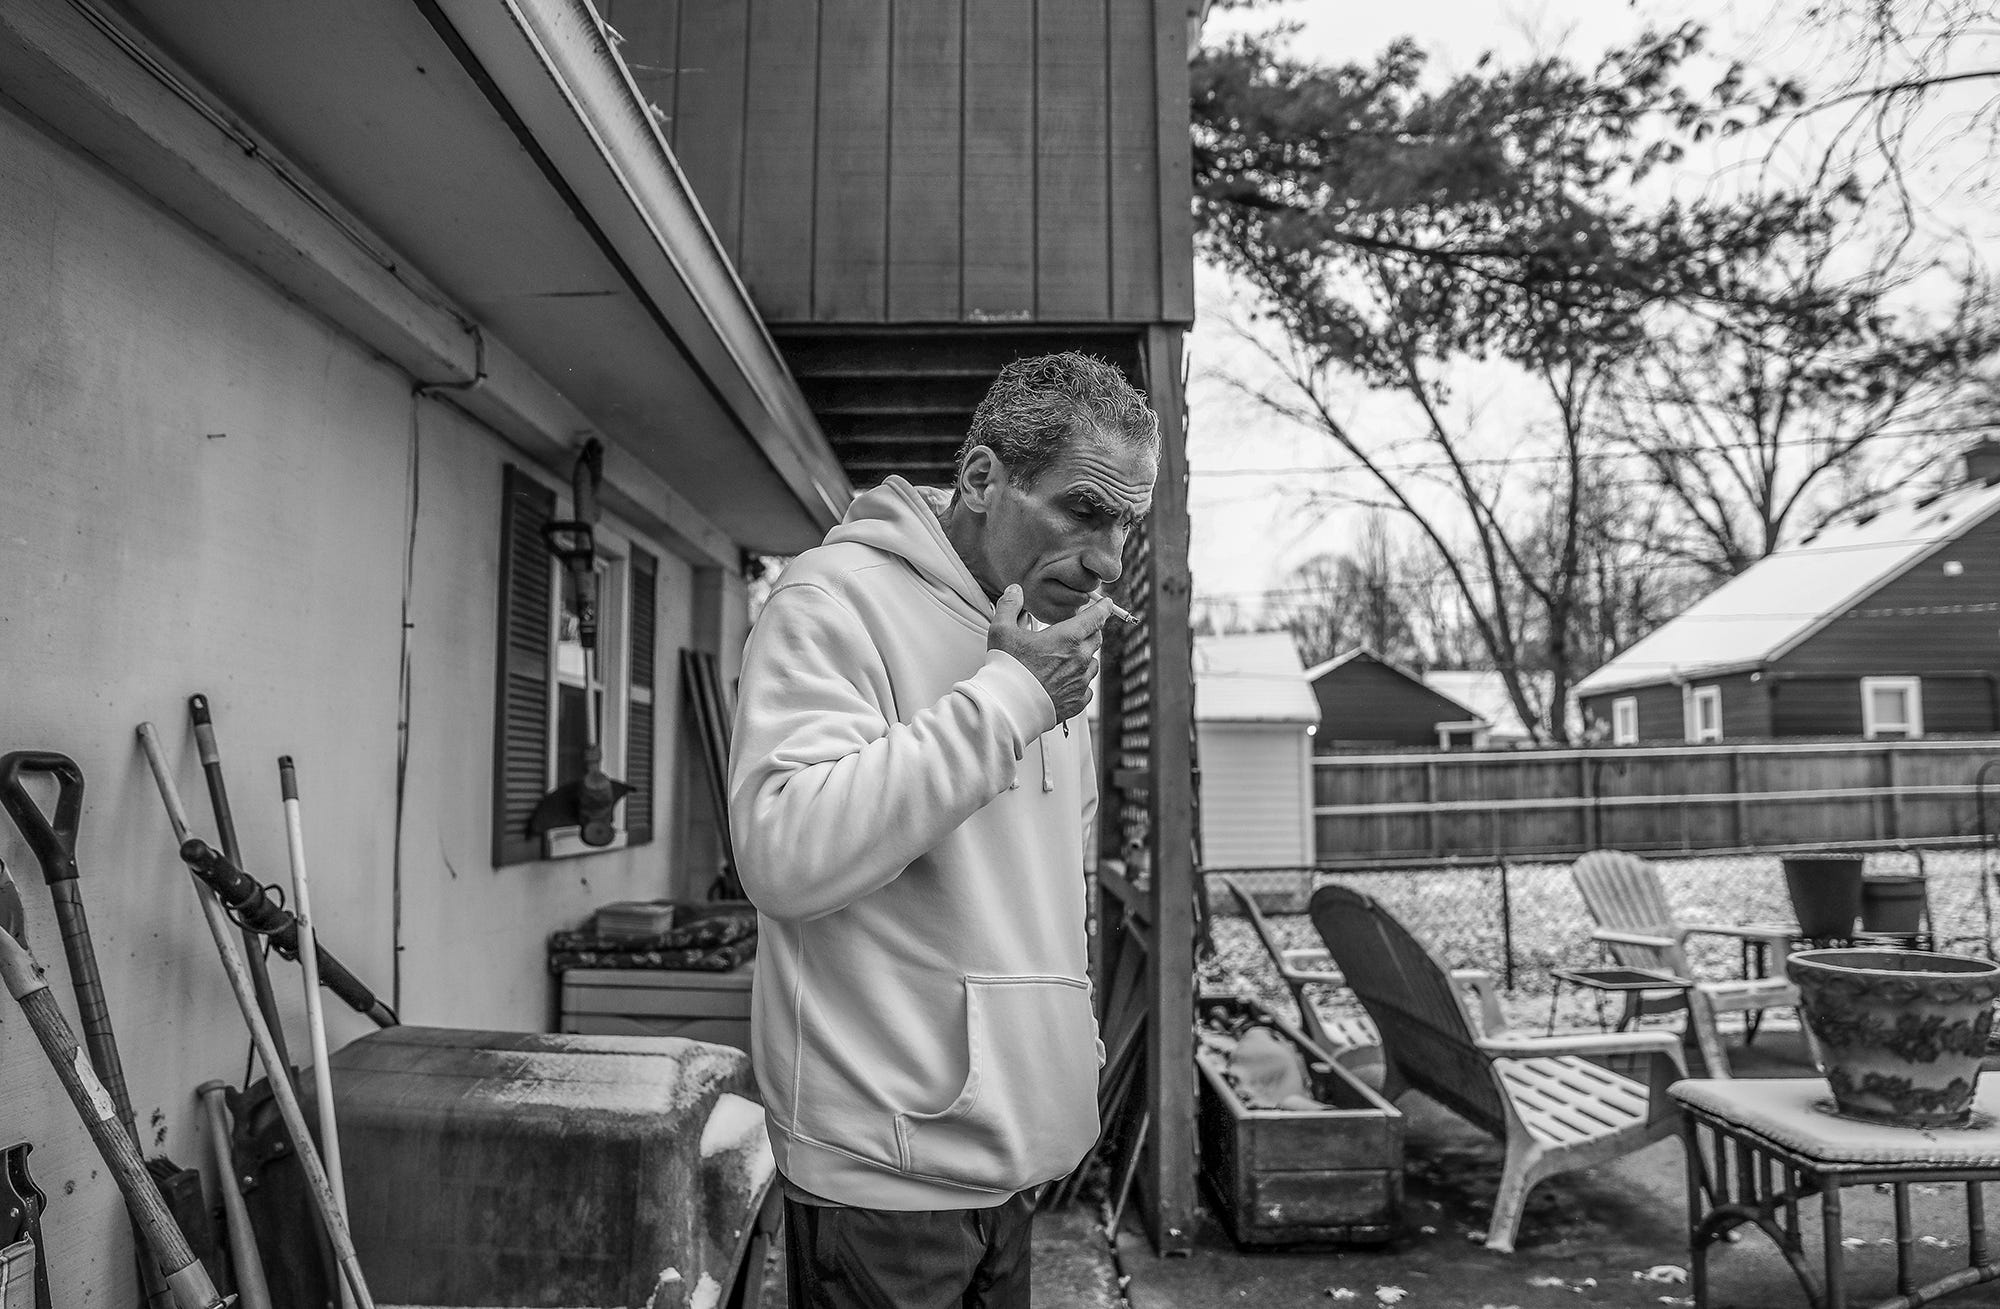 After his morning reading, Mat Pazzarelli has a cigarette at his home in Indianapolis on Wednesday, Dec. 5, 2018.